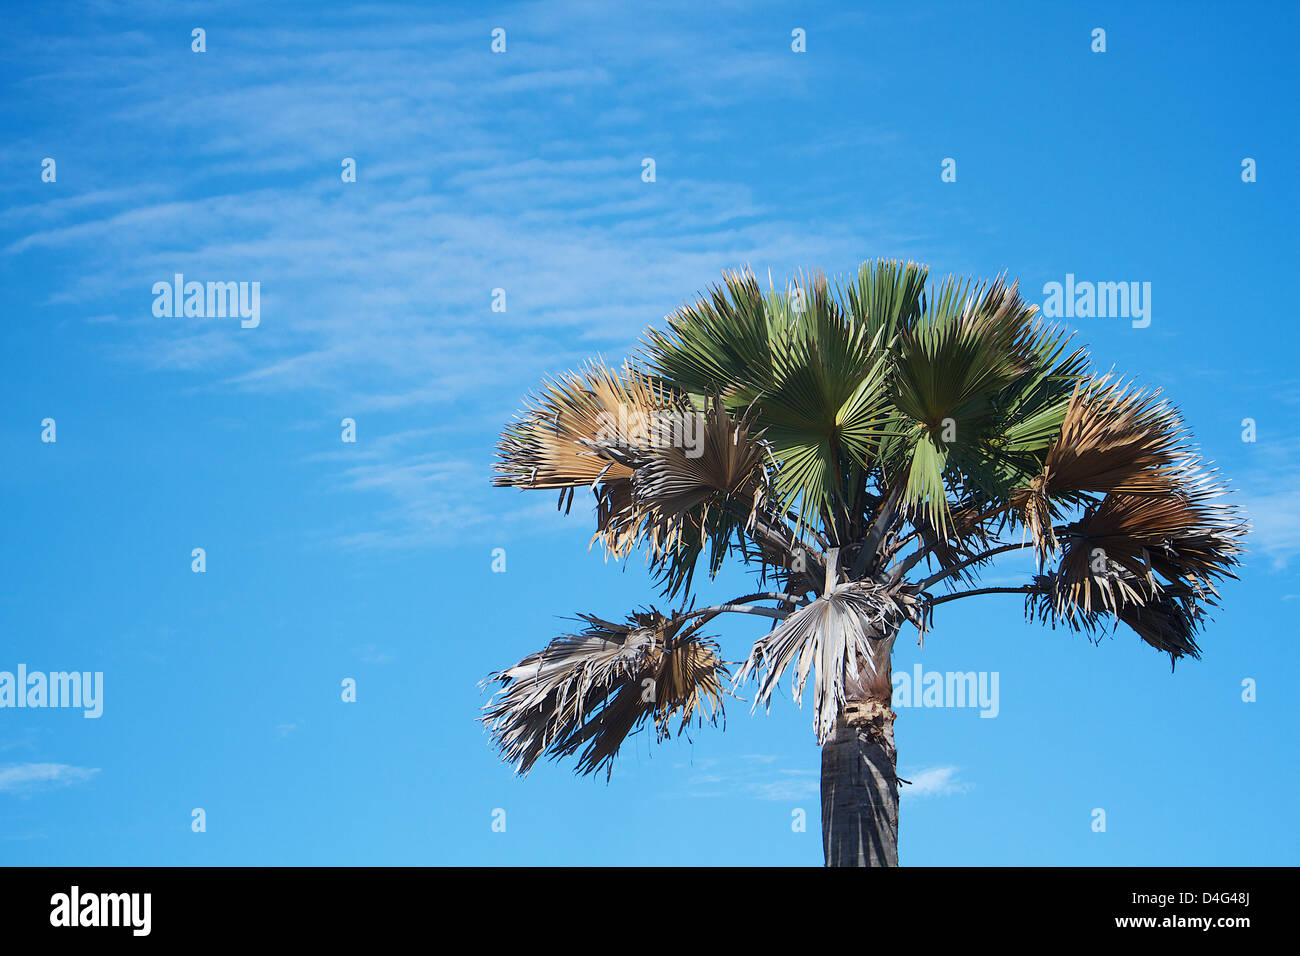 Palm tree Africa against blue sky - Stock Image